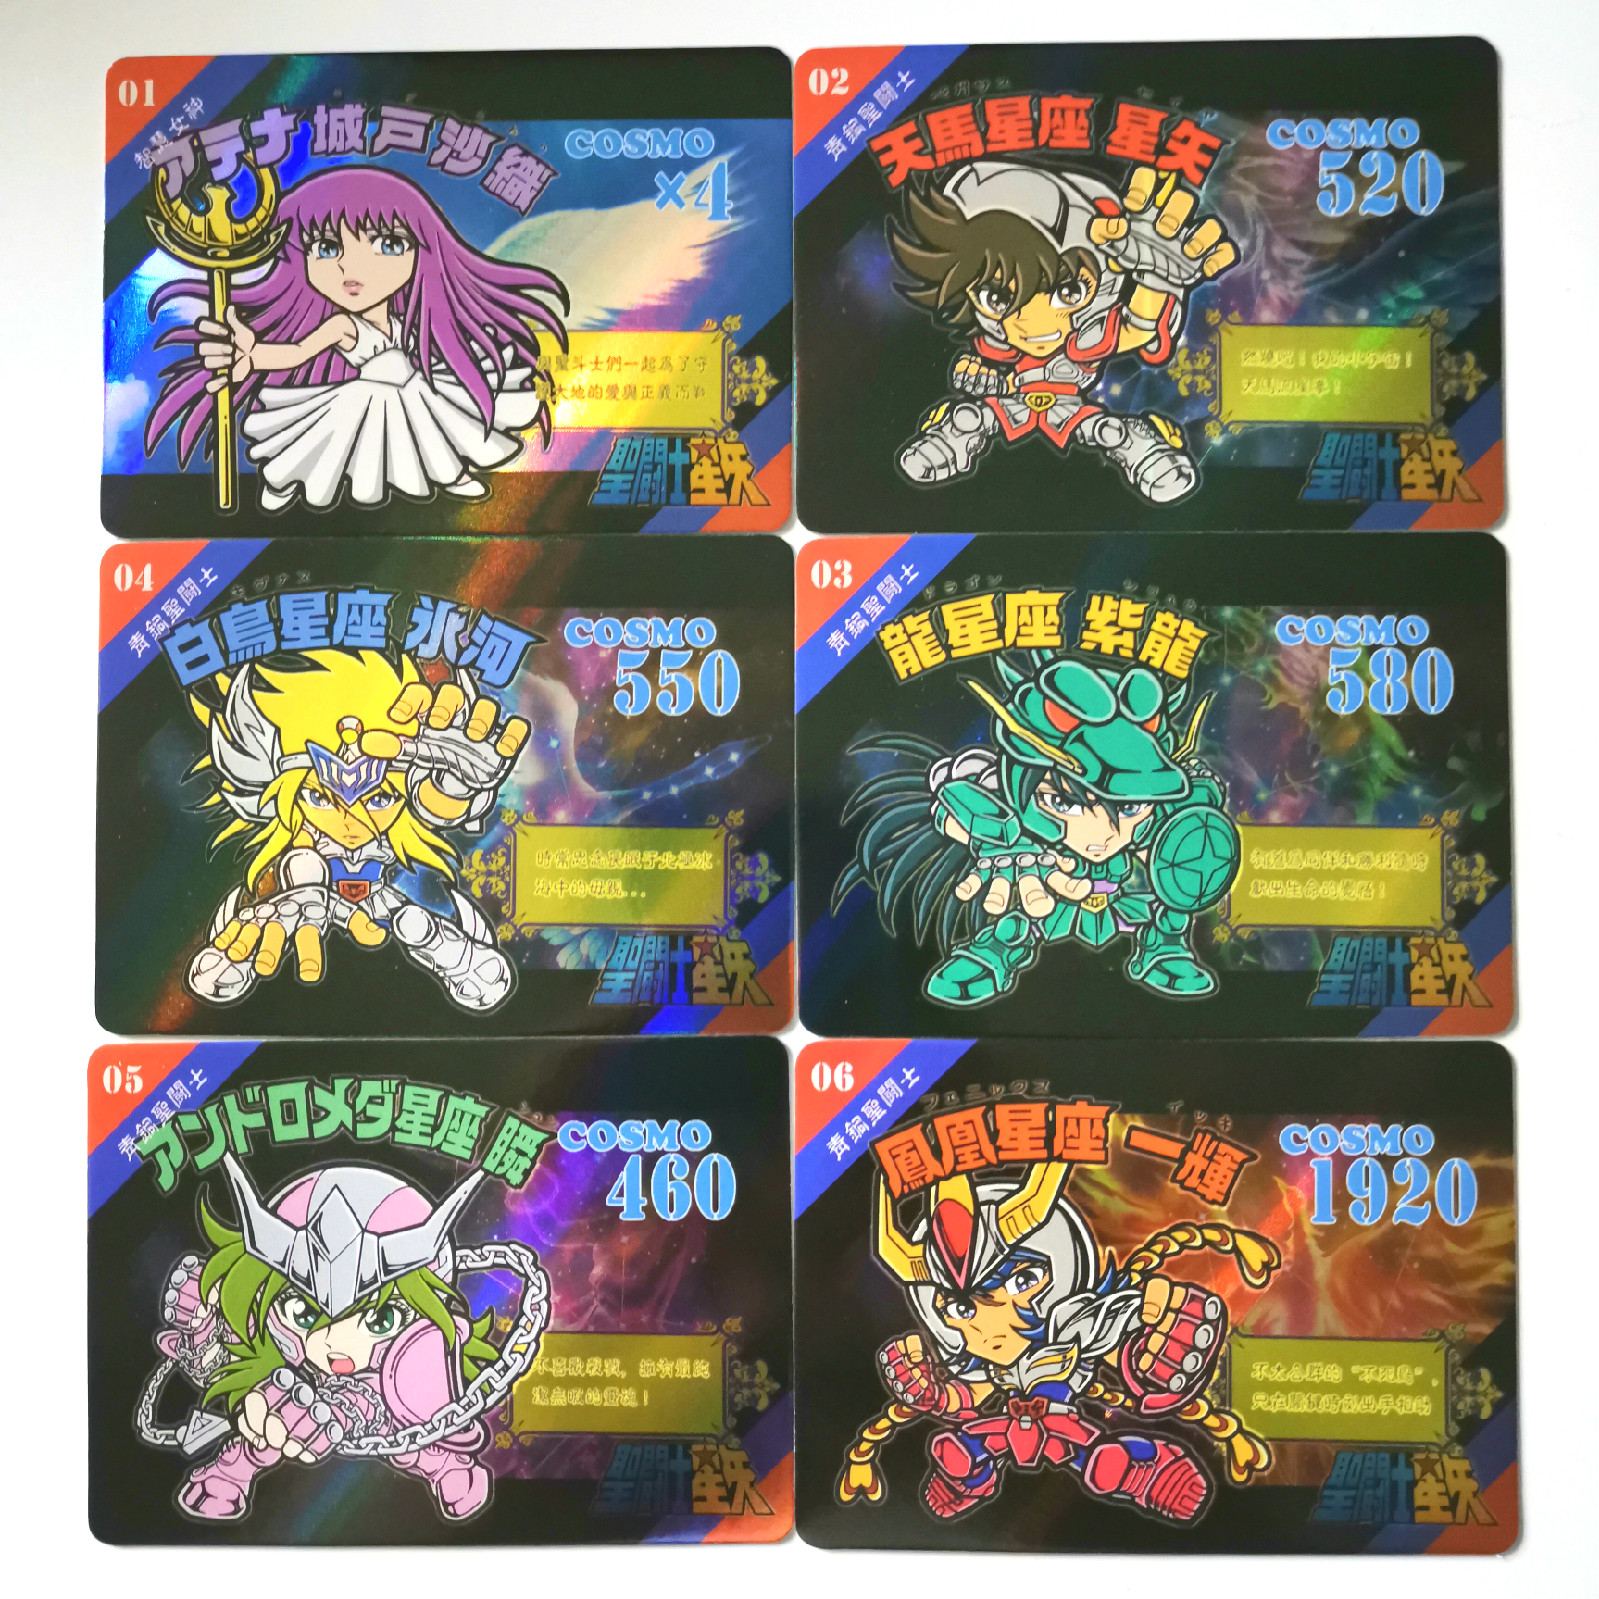 27pcs/set Saint Seiya Q Version Childhood Memories Toys Hobbies Hobby Collectibles Game Collection Anime Cards